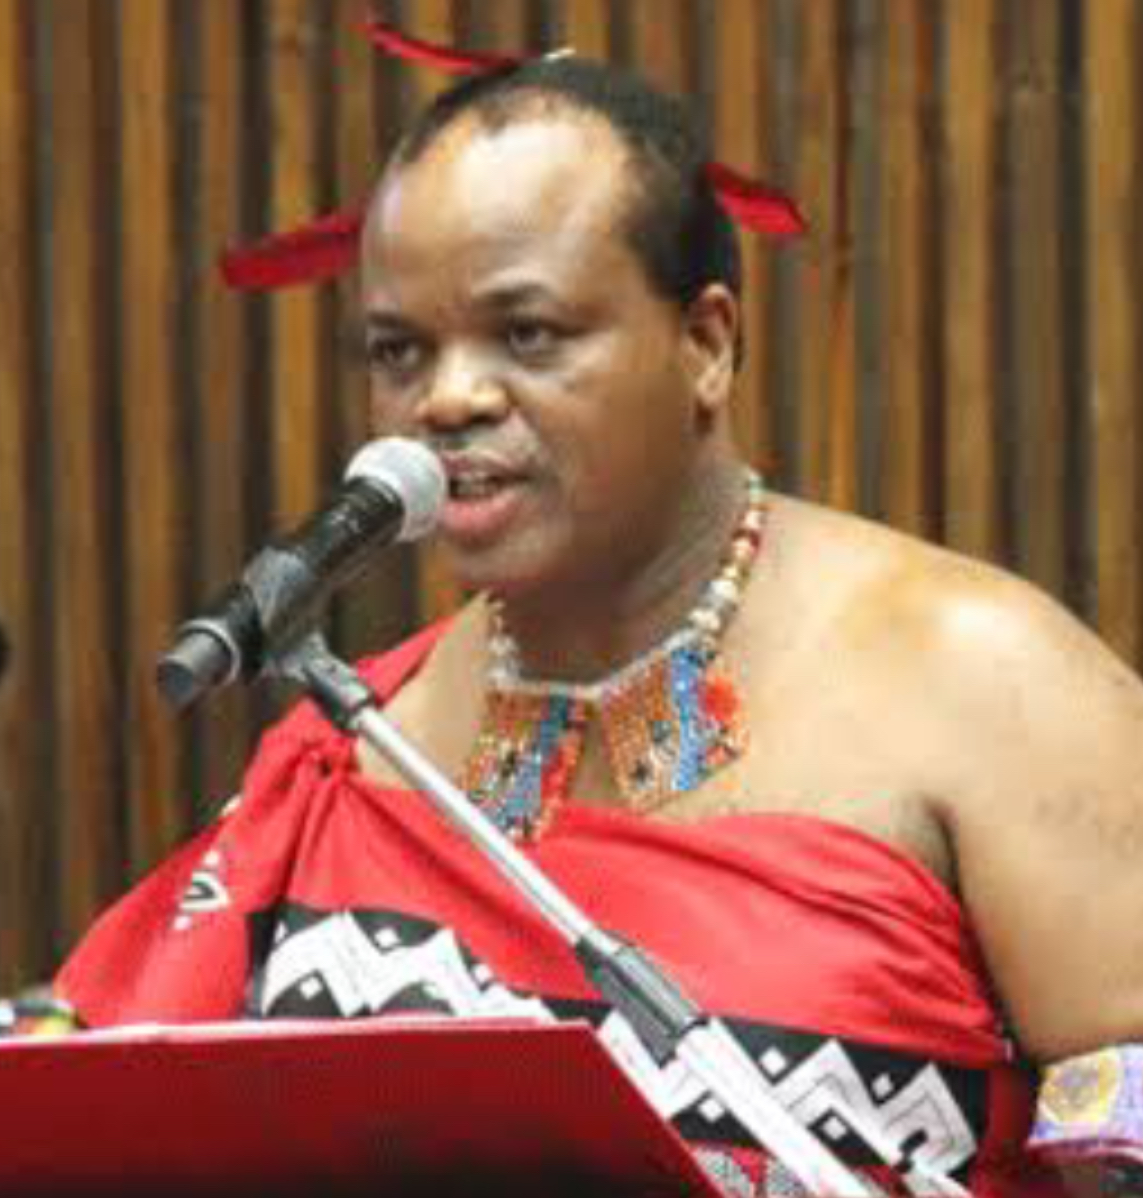 UMLOMO LONGACALI MANGA: King Mswati highly expected to deliver last Parliament Speech before his 2022 First World Status promise.